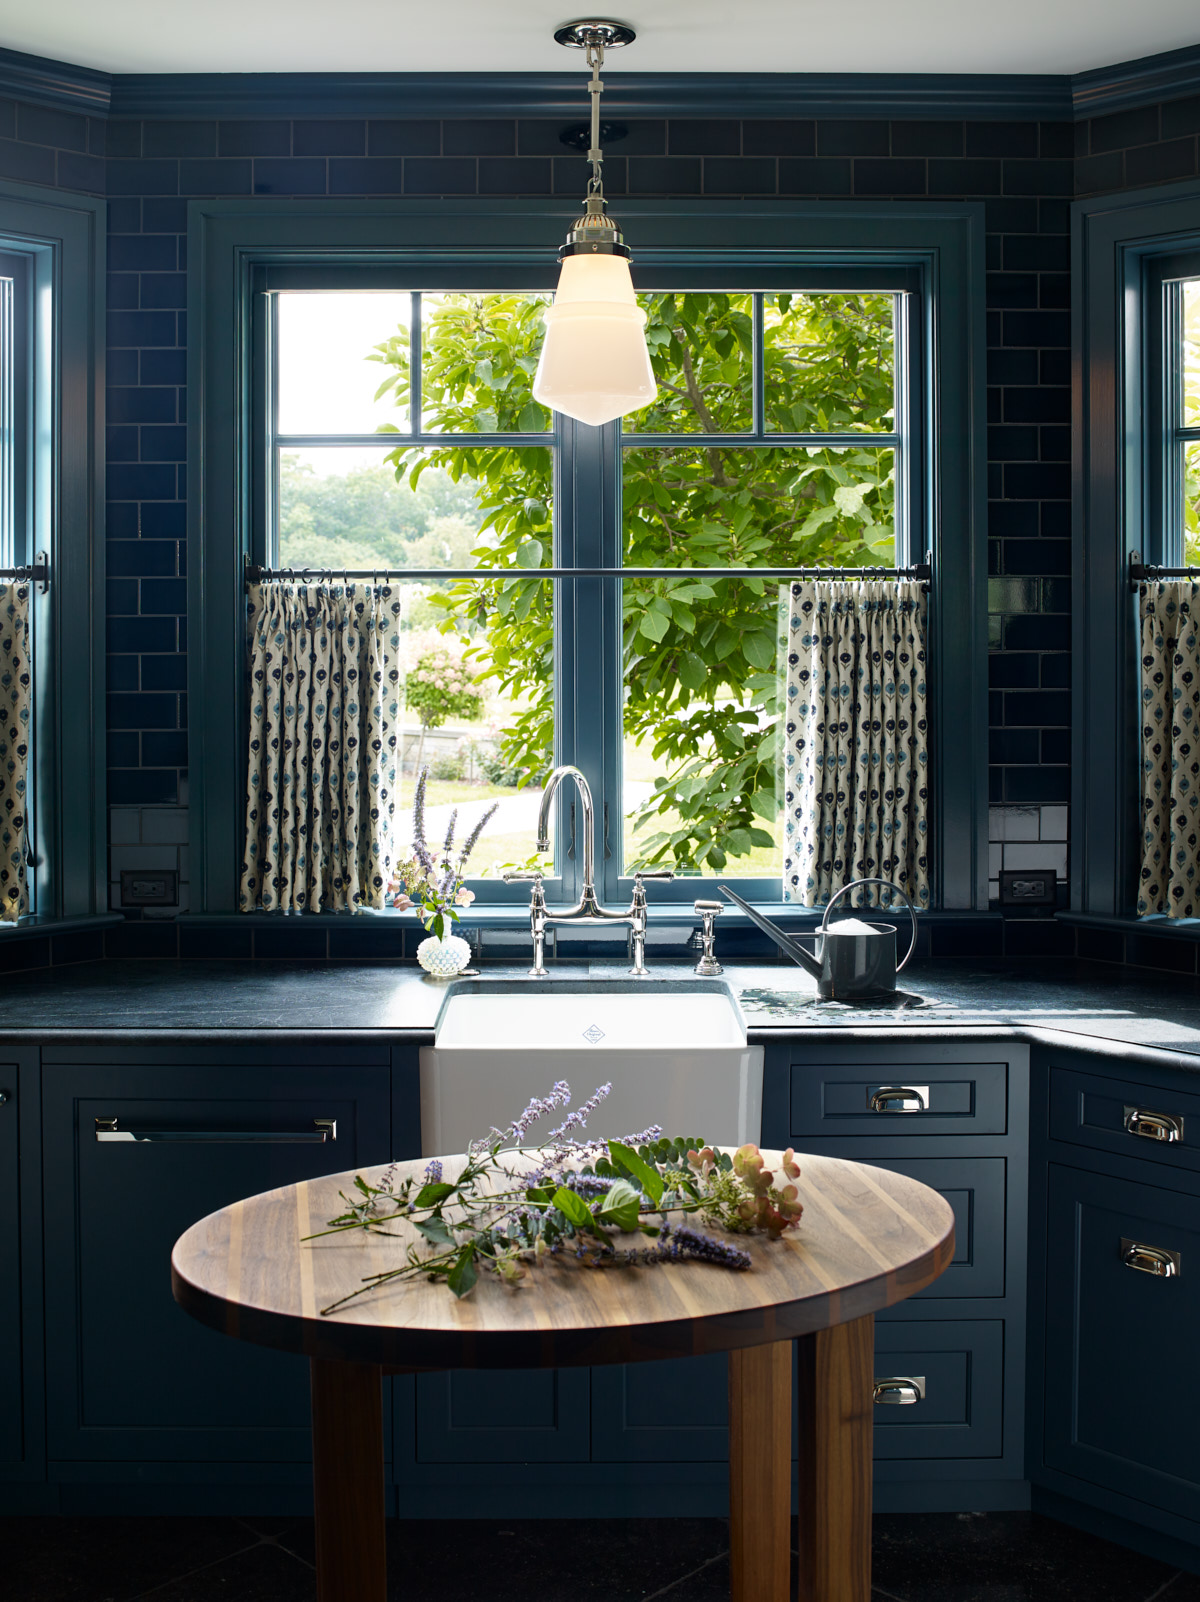 A view of the kitchen area that highlights the unique light fixture and deep blue theme.